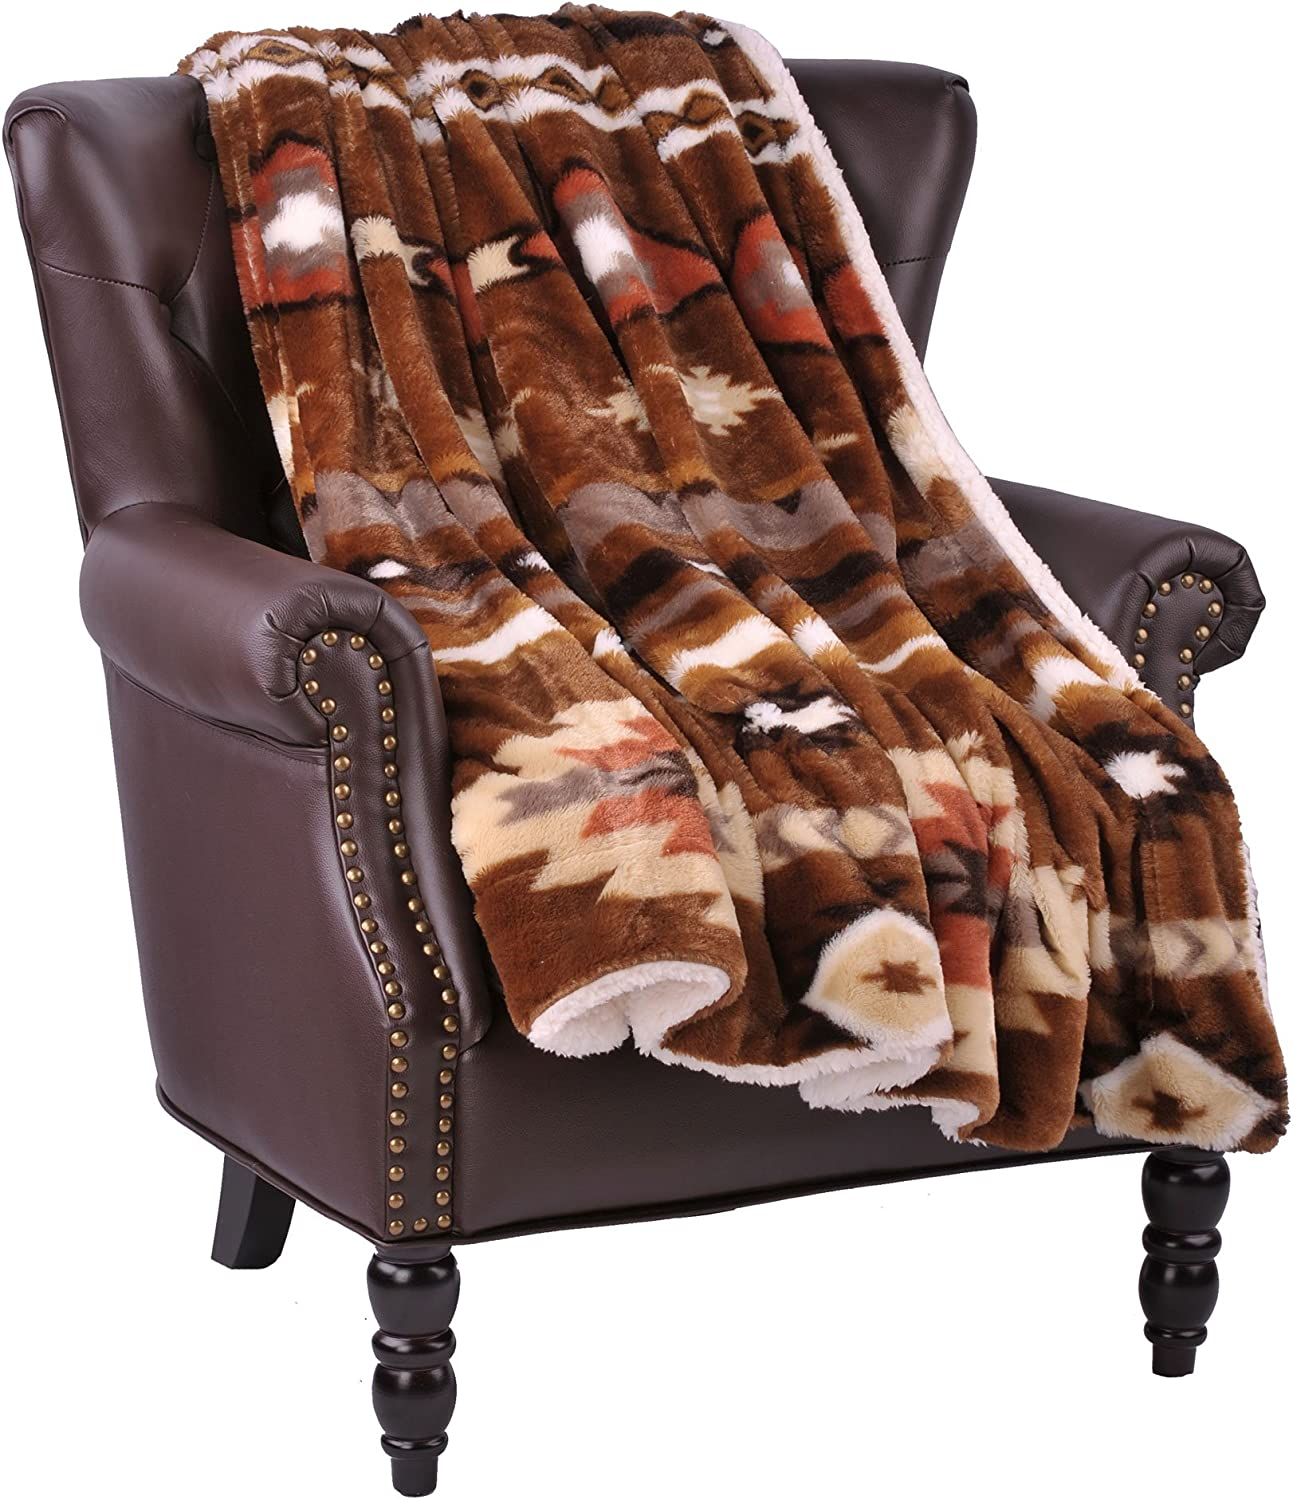 "Home Soft Things Boon Faux Fur Southwest Throw with Sherpa Backing, 50"" x 60"", Coffee"